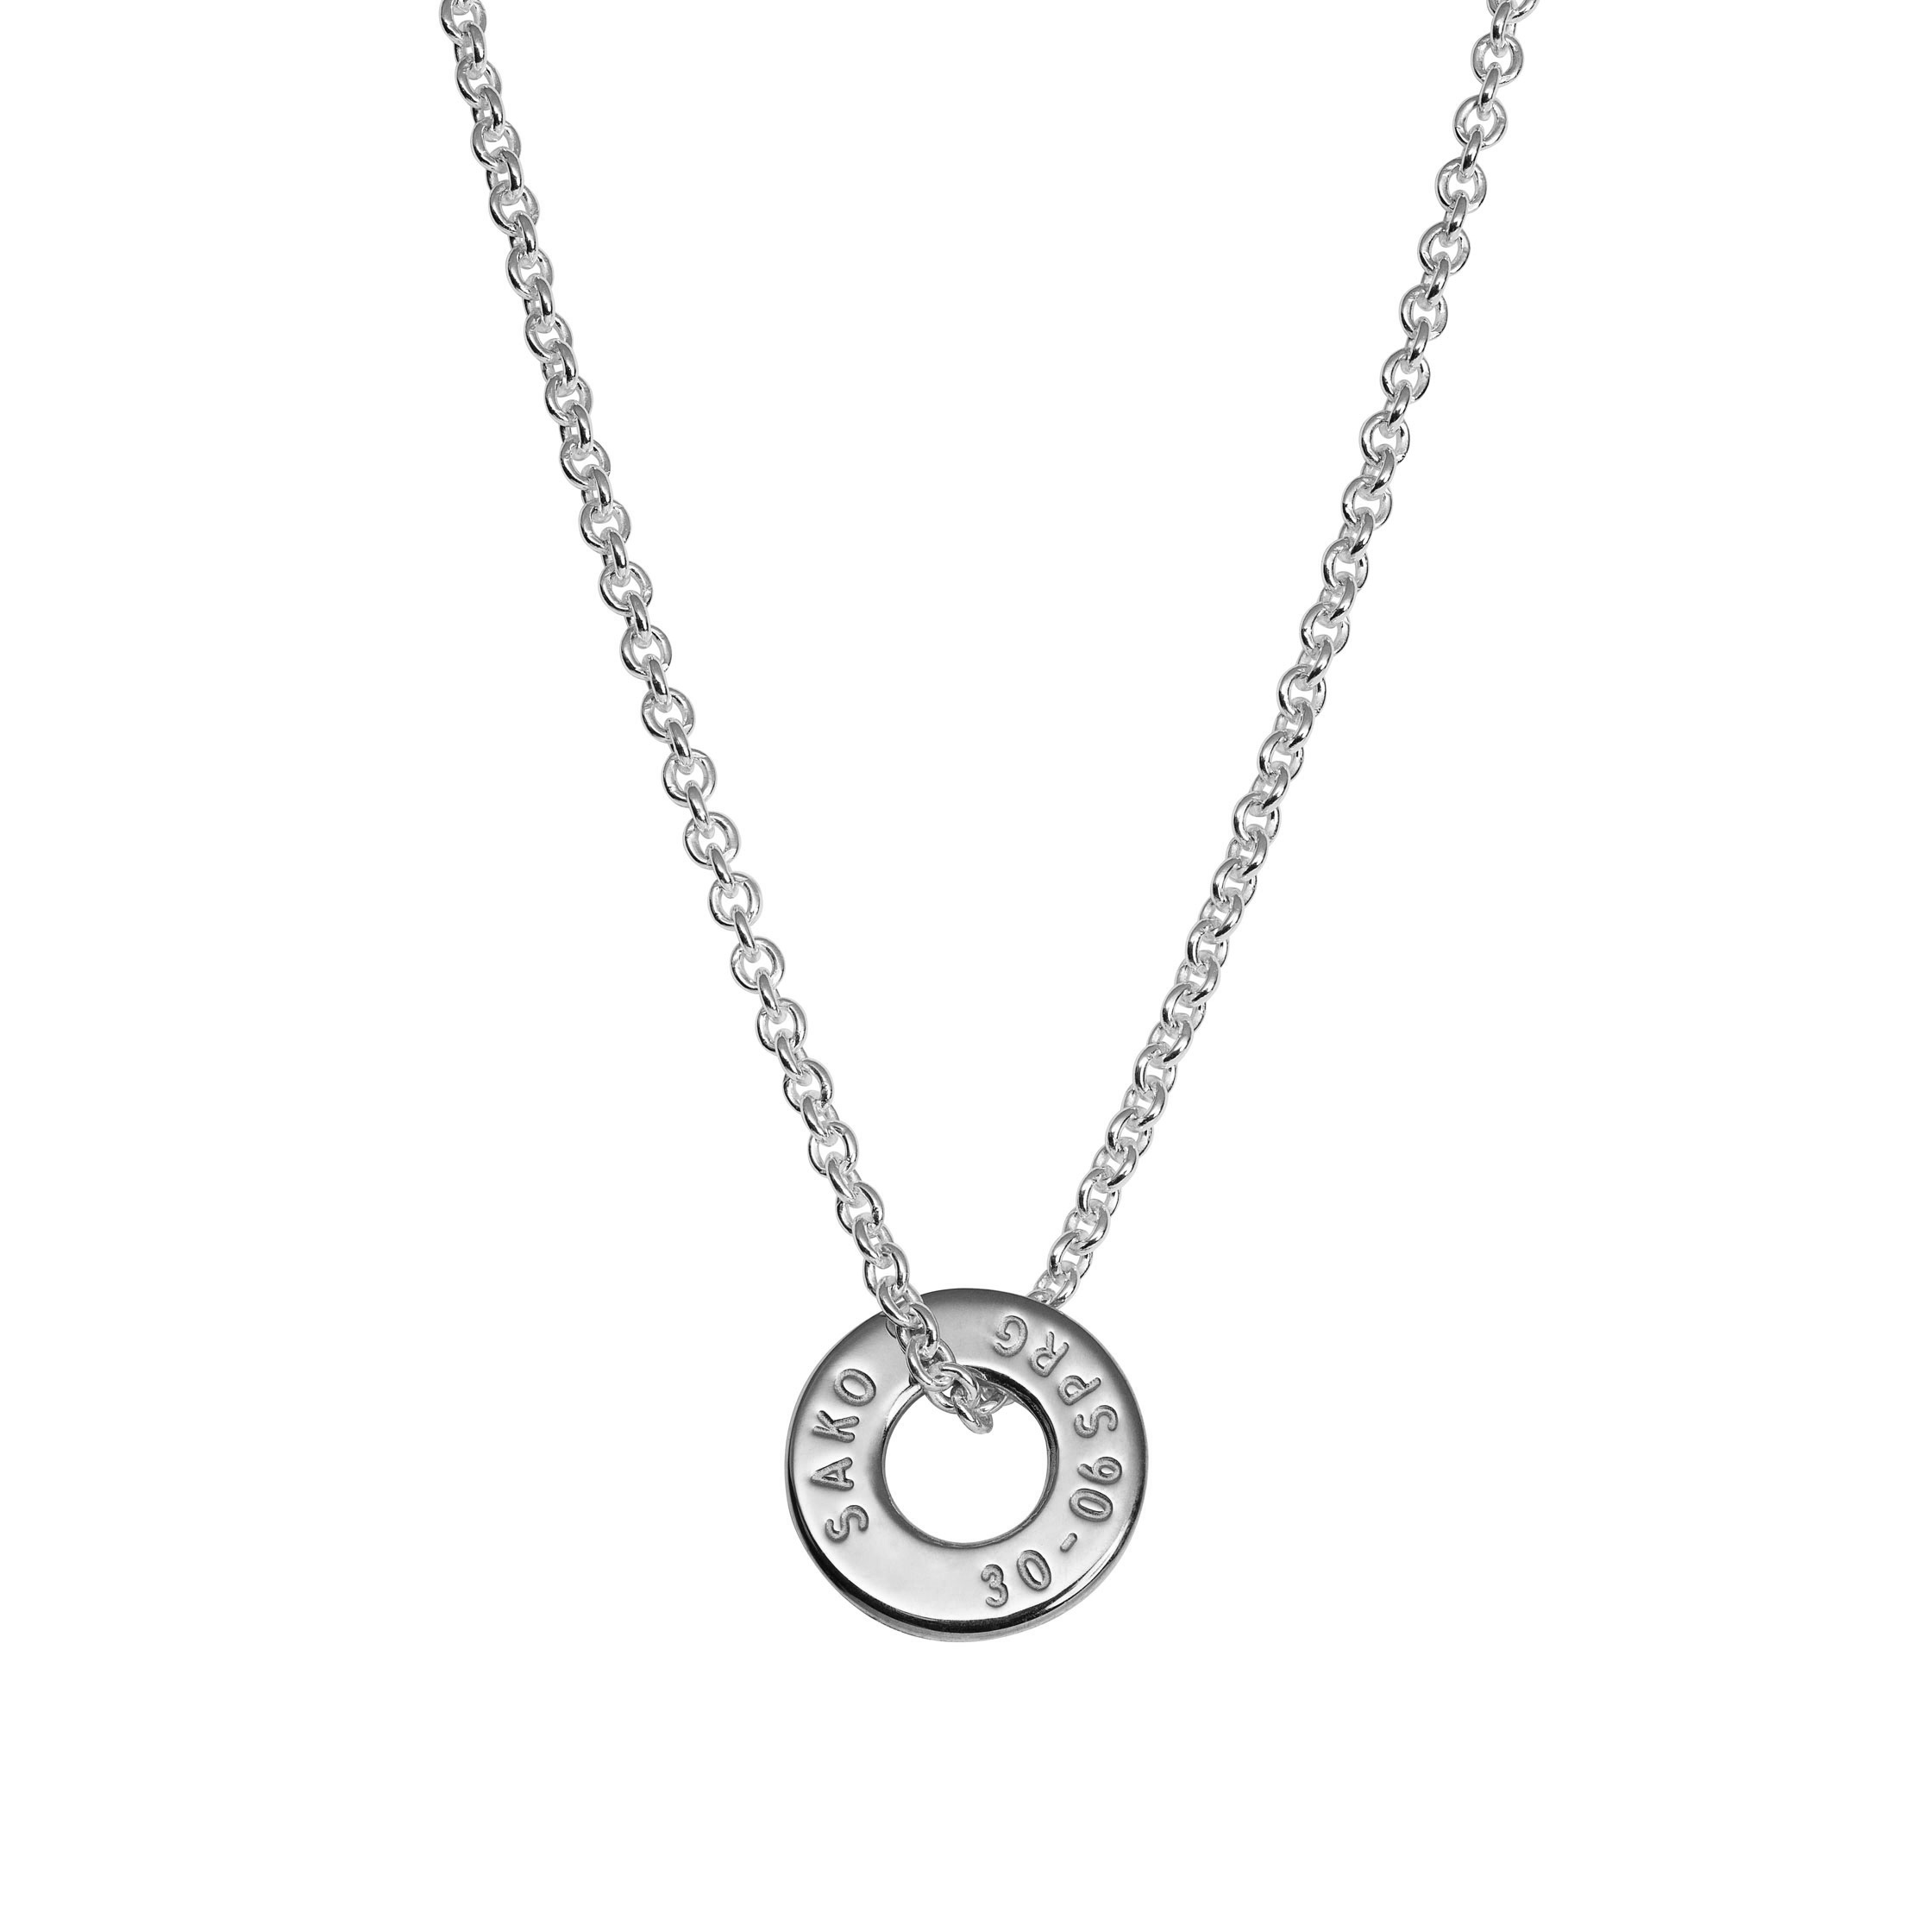 necklace jewellery hiho equestrian best sellers sterling collection horseshoe silver hunting